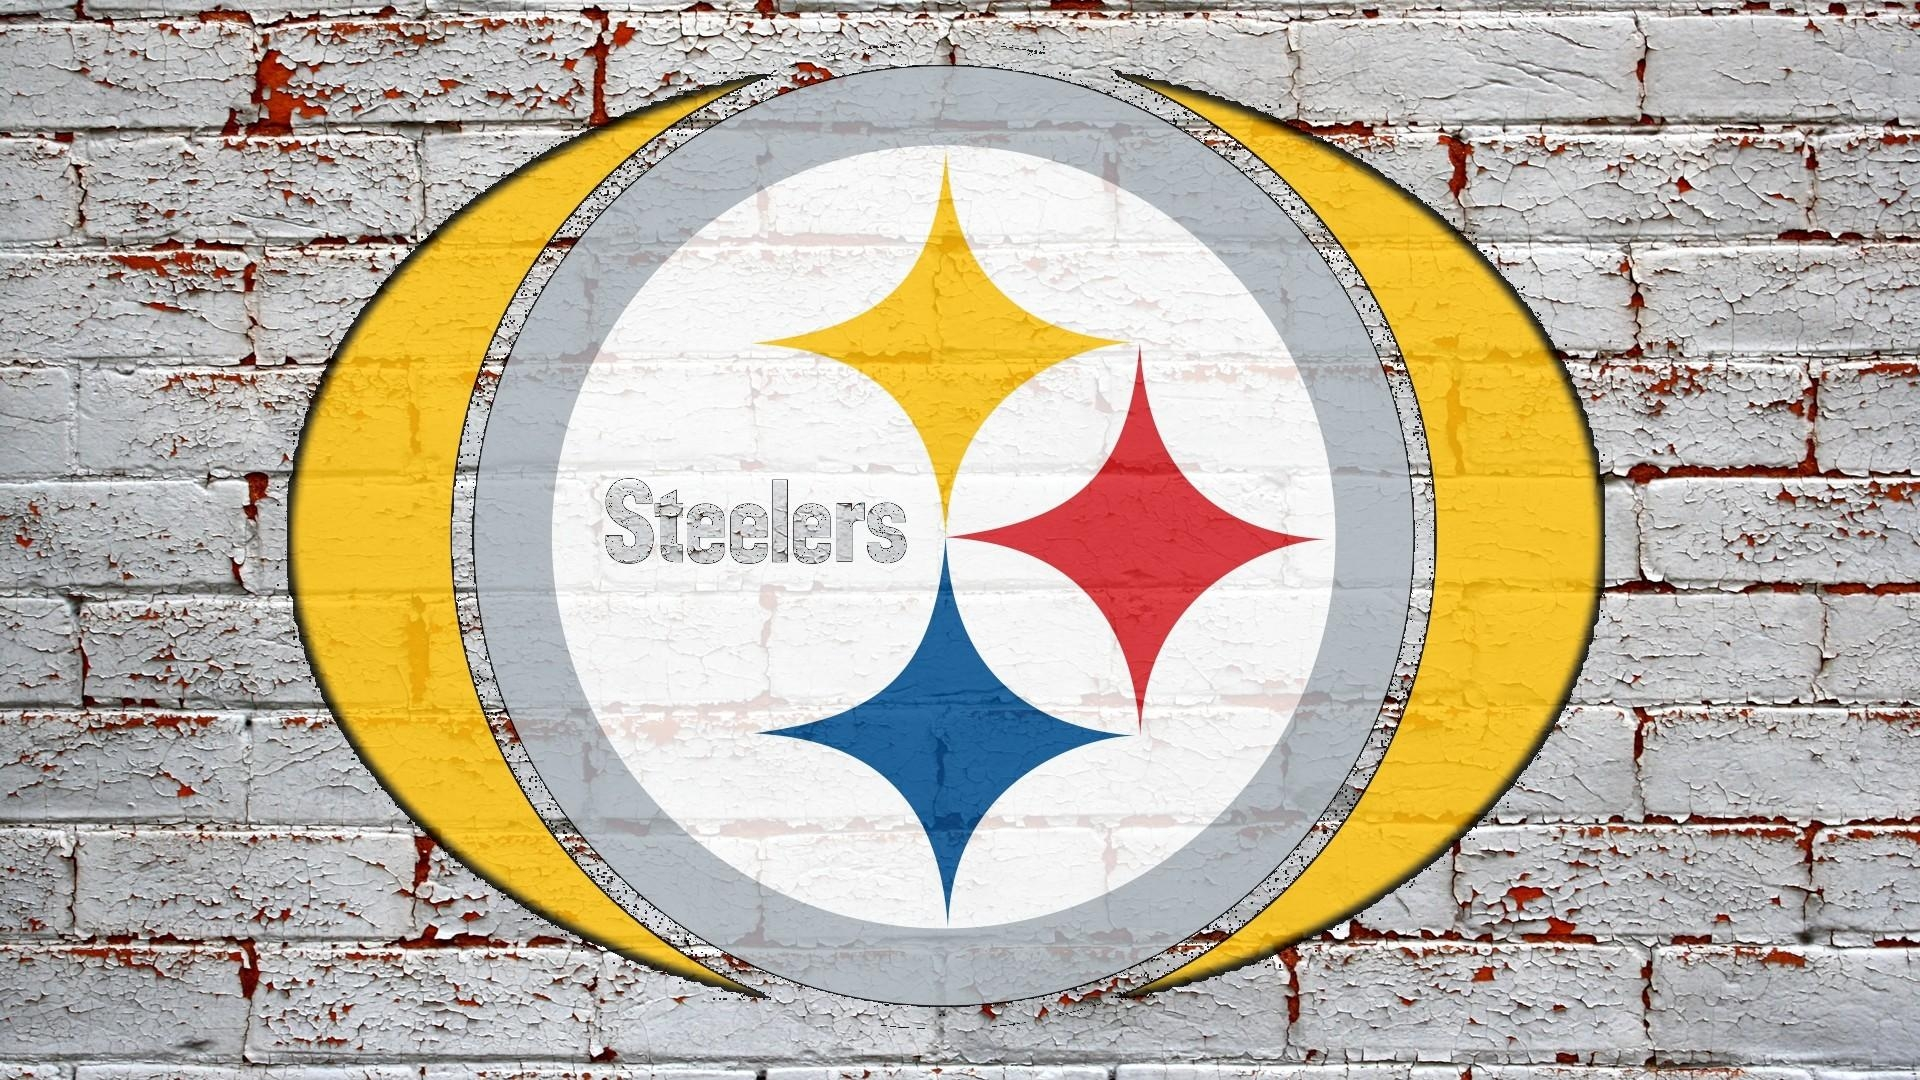 Nfl Pittsburgh Steelers Logo On Grey Brick Wall 1920X1080 Hd Nfl Pertaining To Steelers Wall Art (Image 10 of 20)